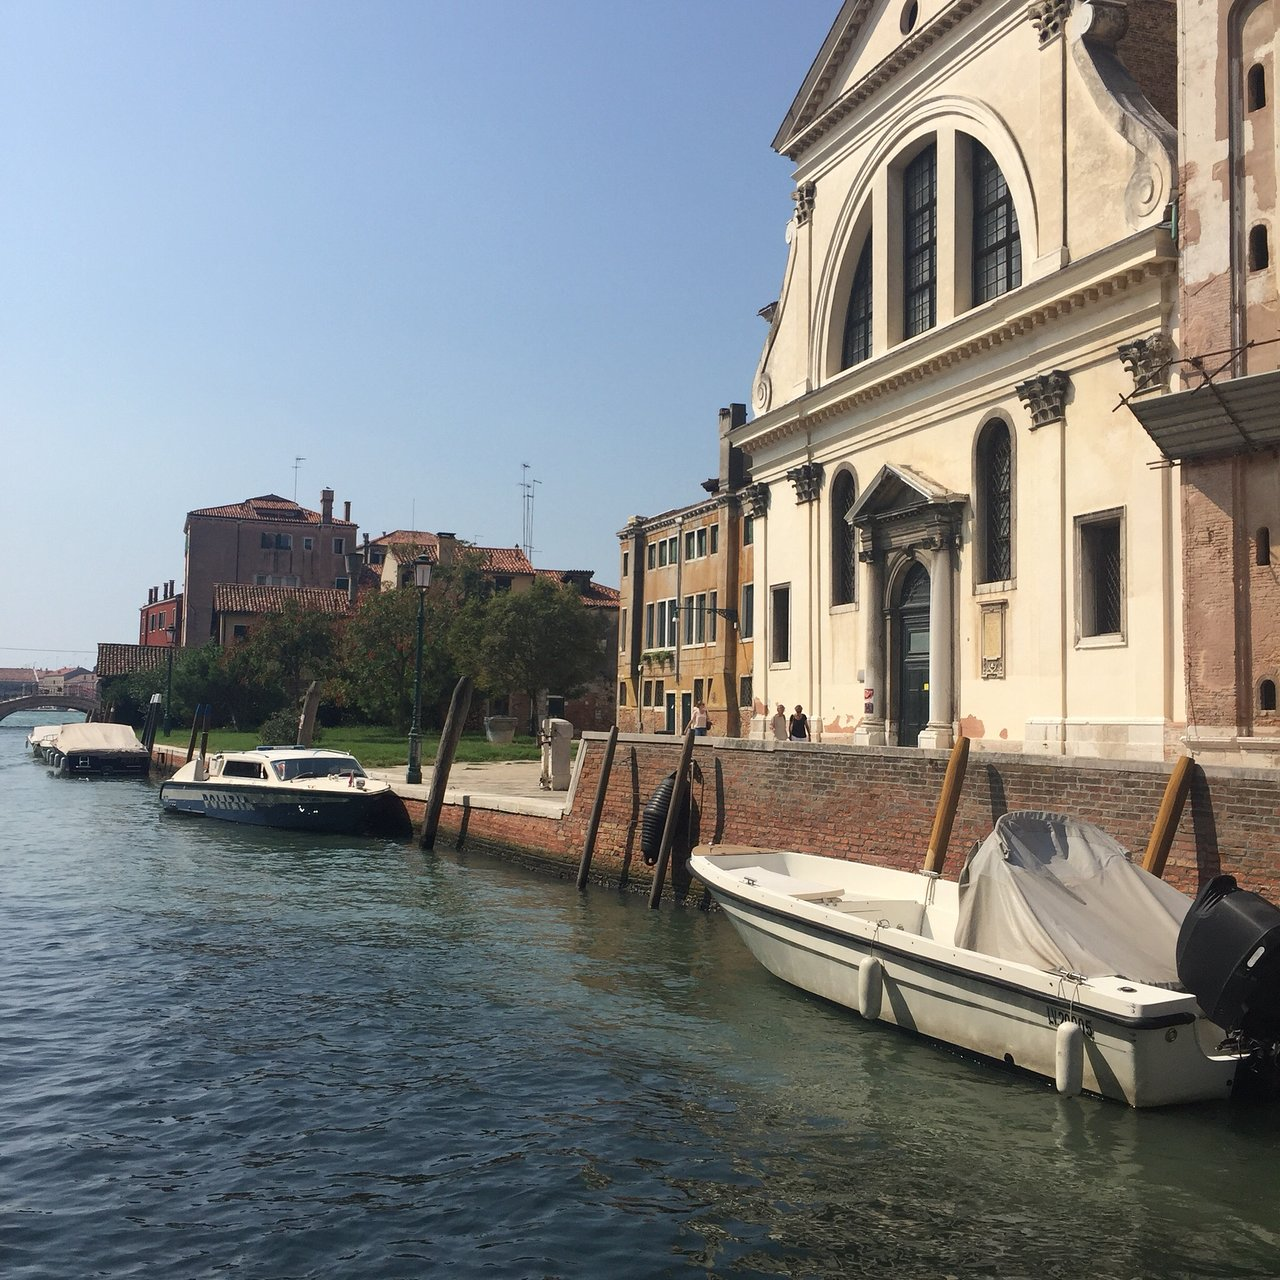 Free Venice City Tour - By Associazione Culturale Marco Polo